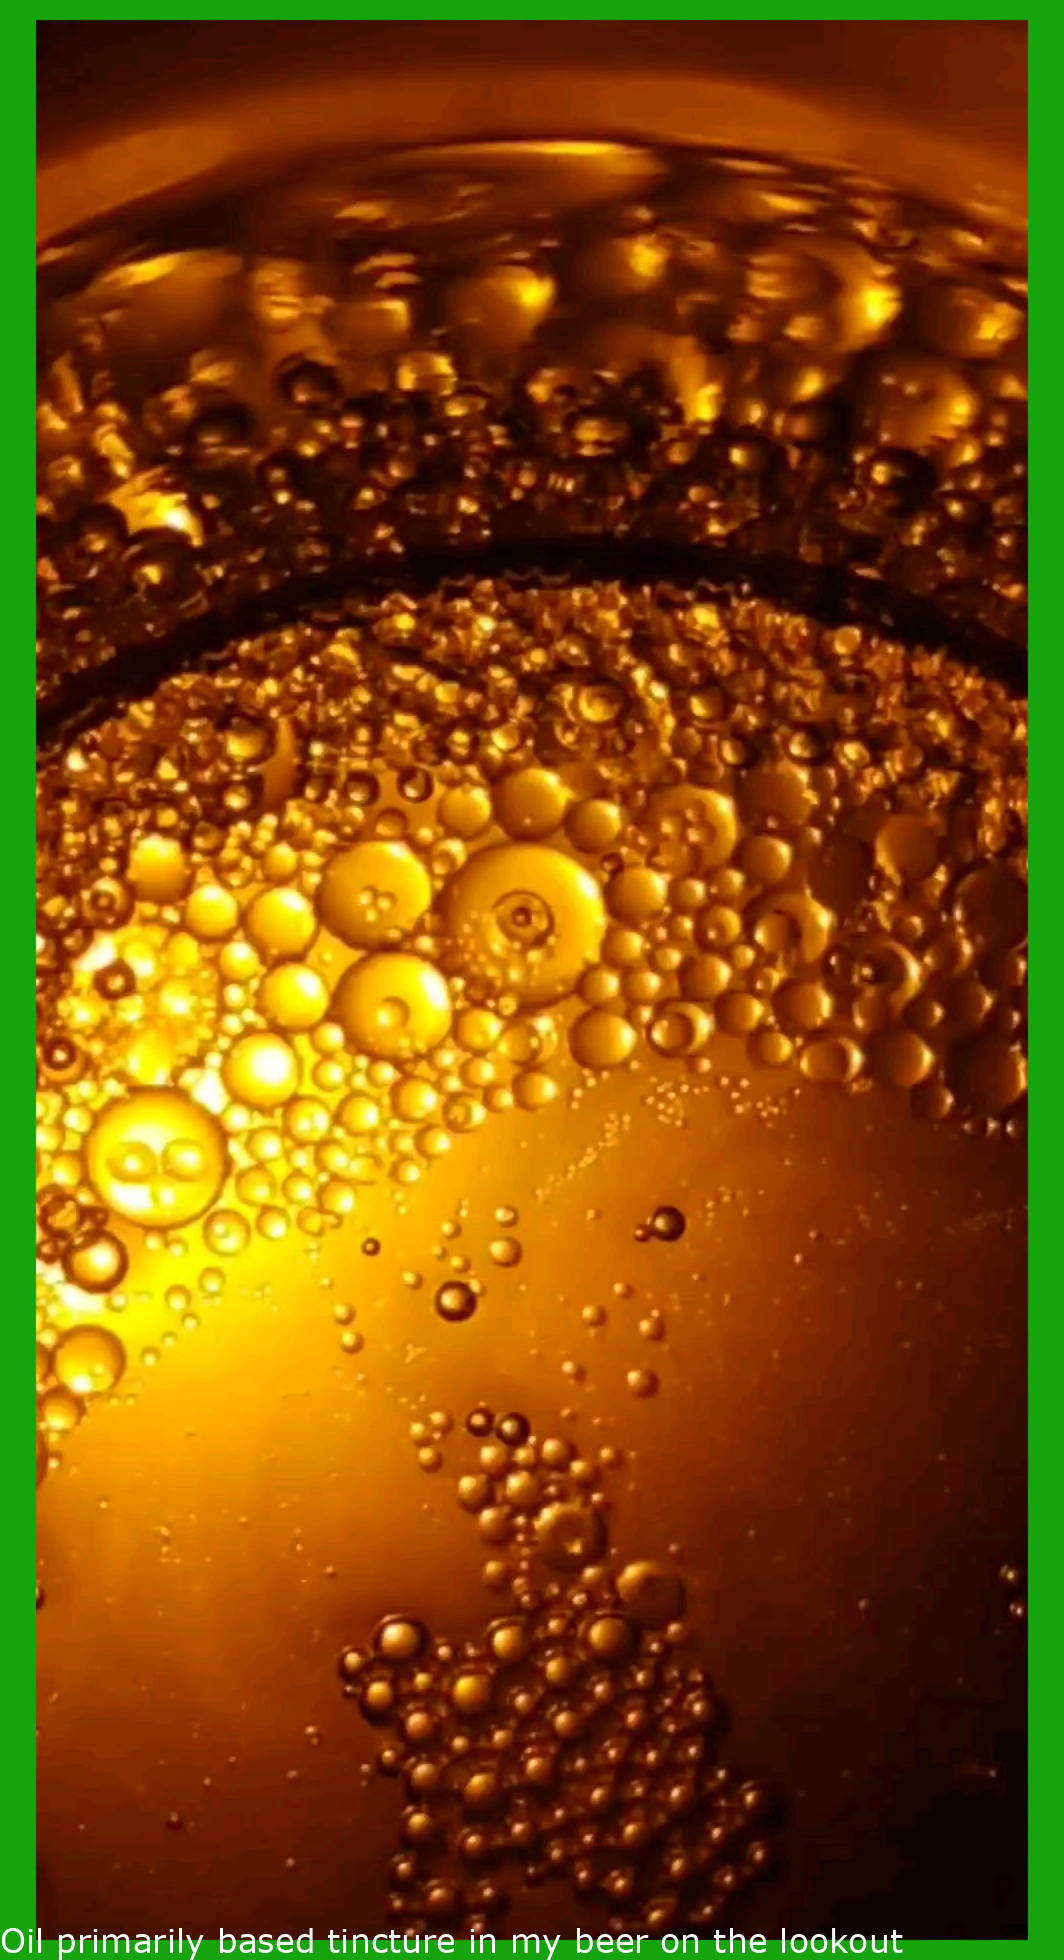 Oil based tincture in my beer looking crazy when bottom lit